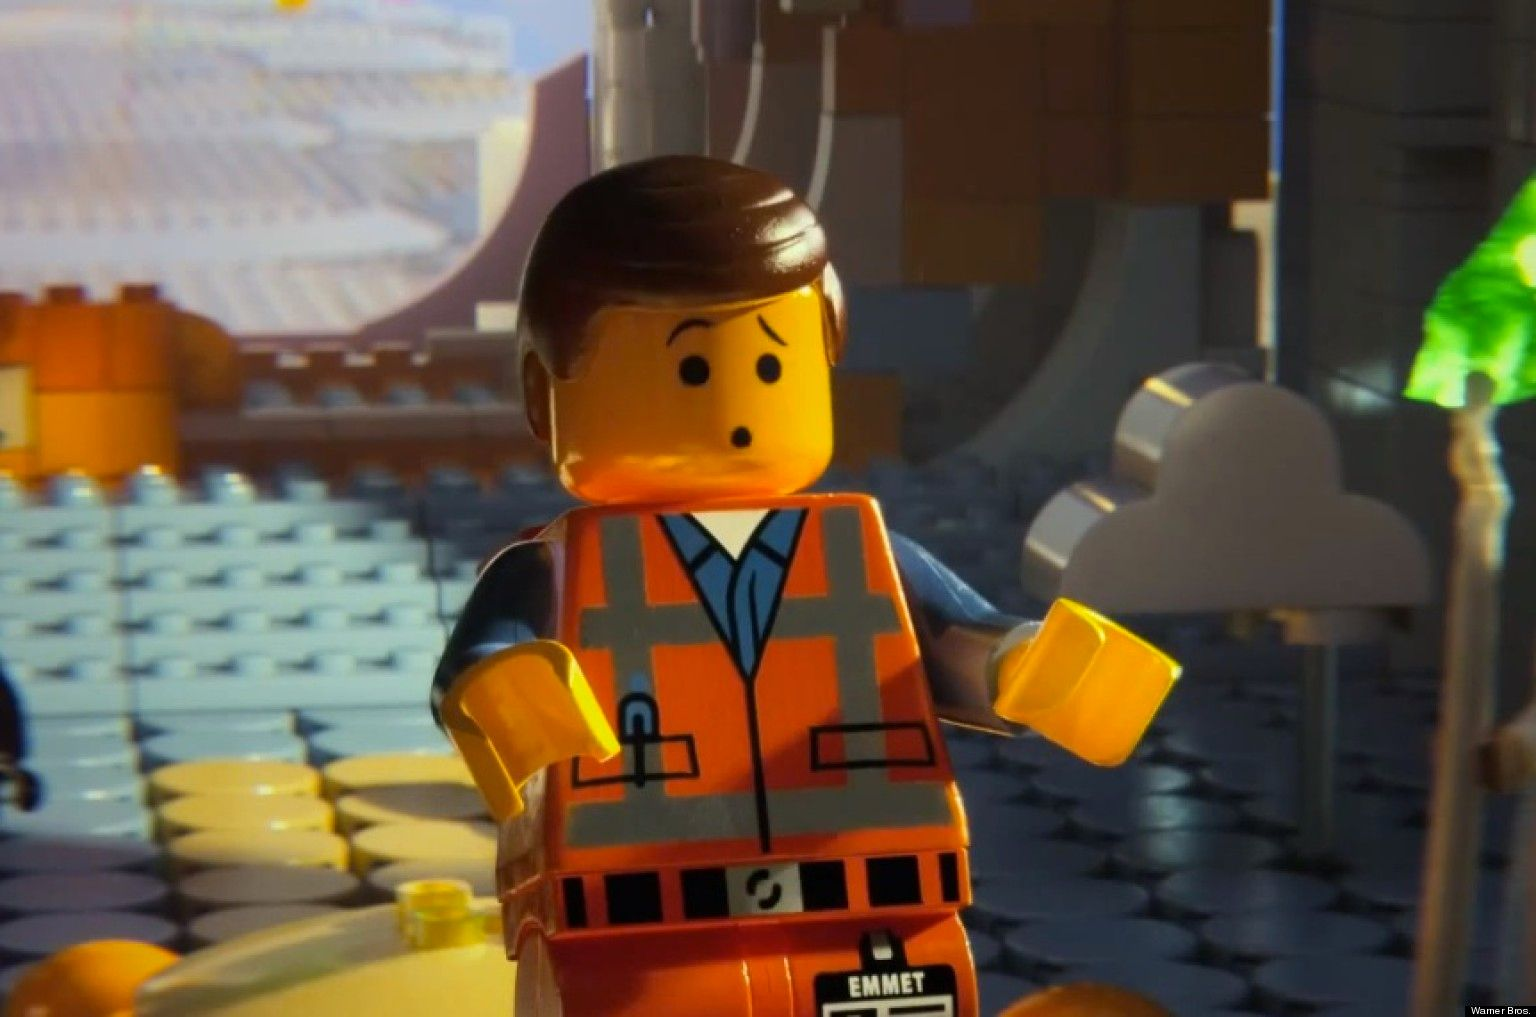 Pictures From The Lego Movie: Comic-Con: THE LEGO MOVIE Panel Recap